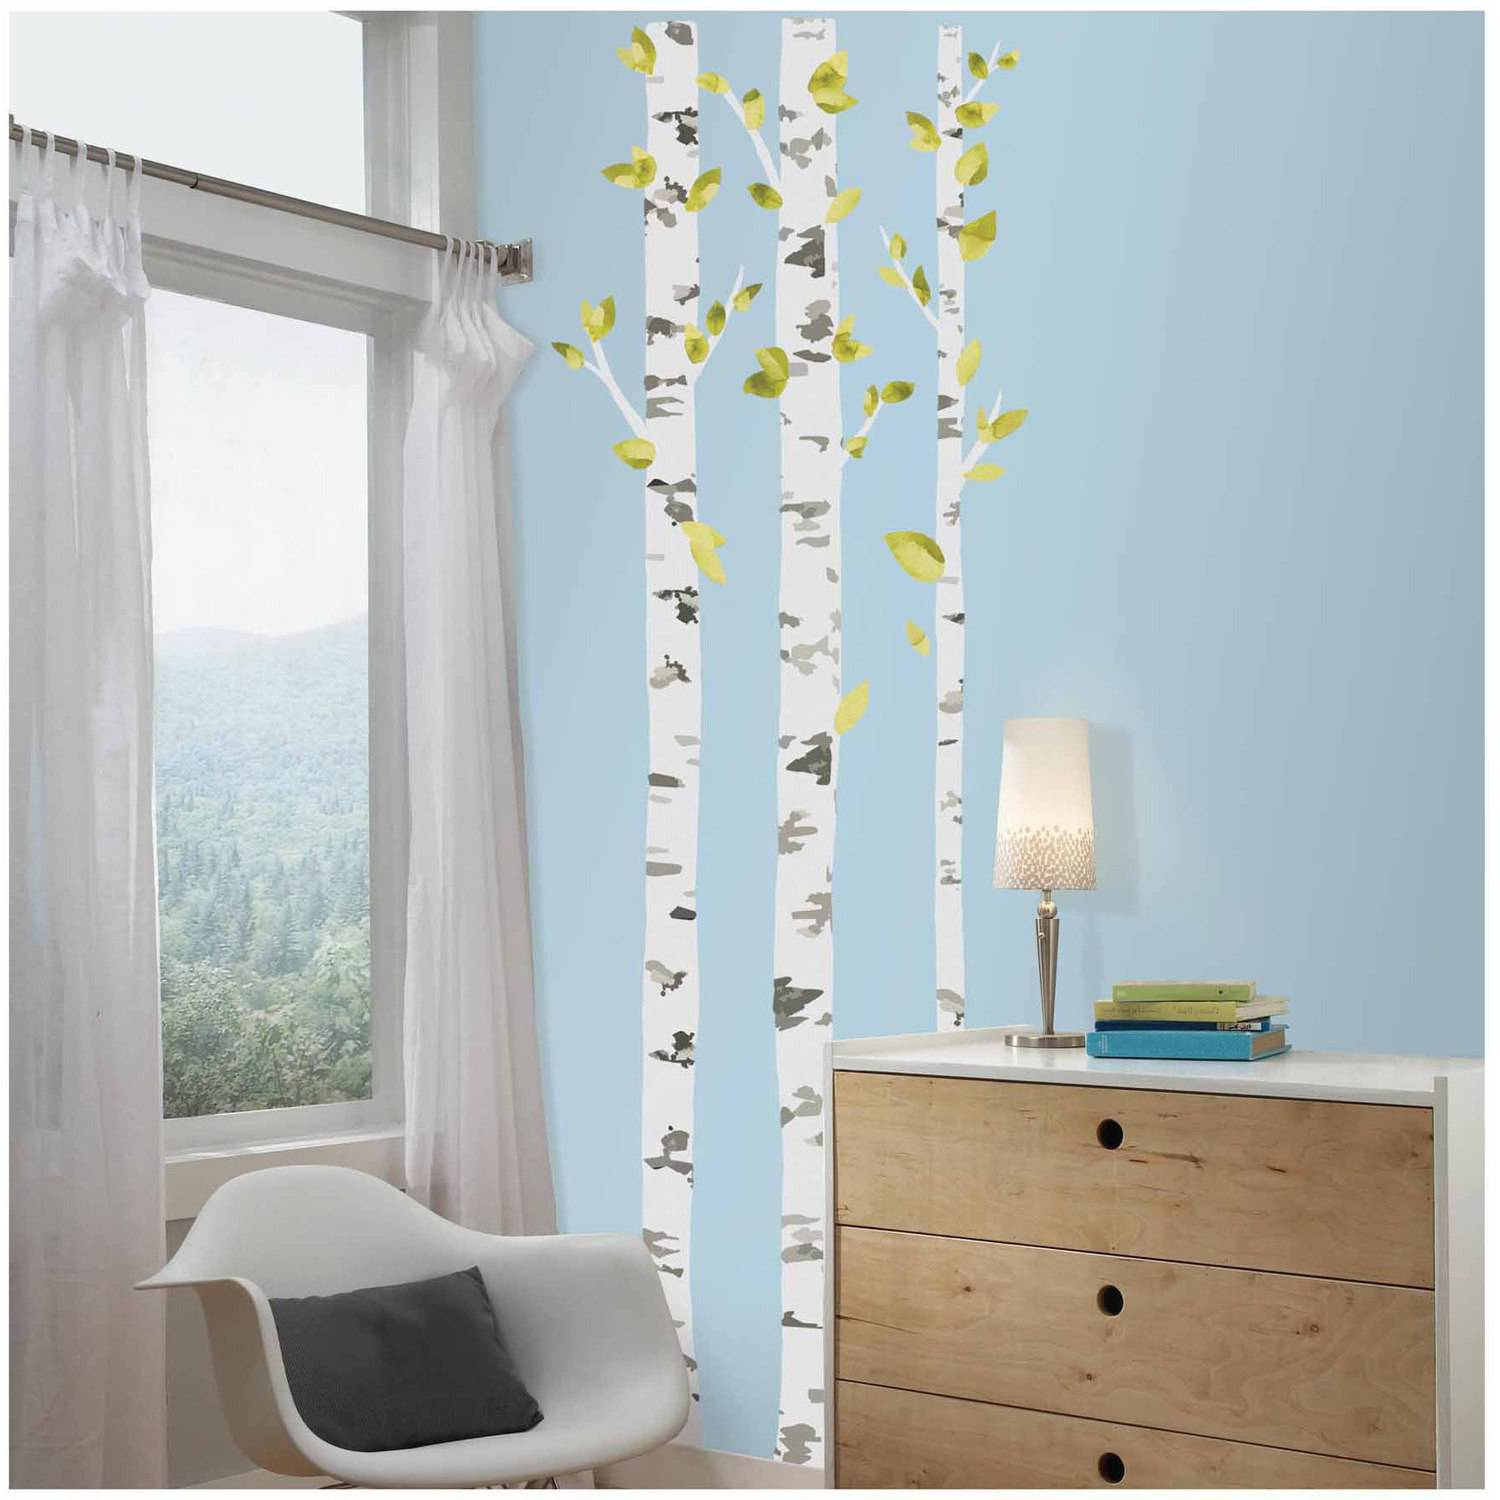 Birch Trees Peel and Stick Giant Wall Decals by RoomMates